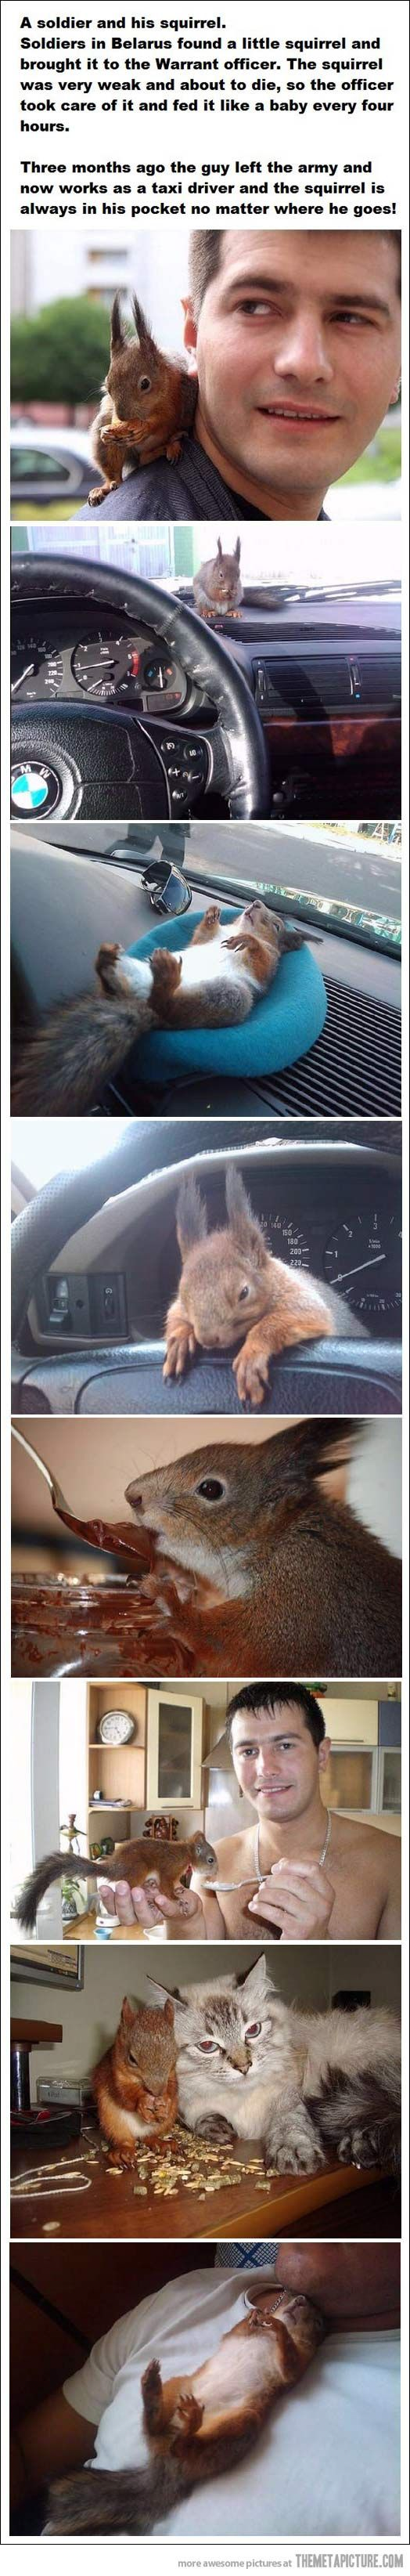 On my goodness I want a squirrel so bad!!!